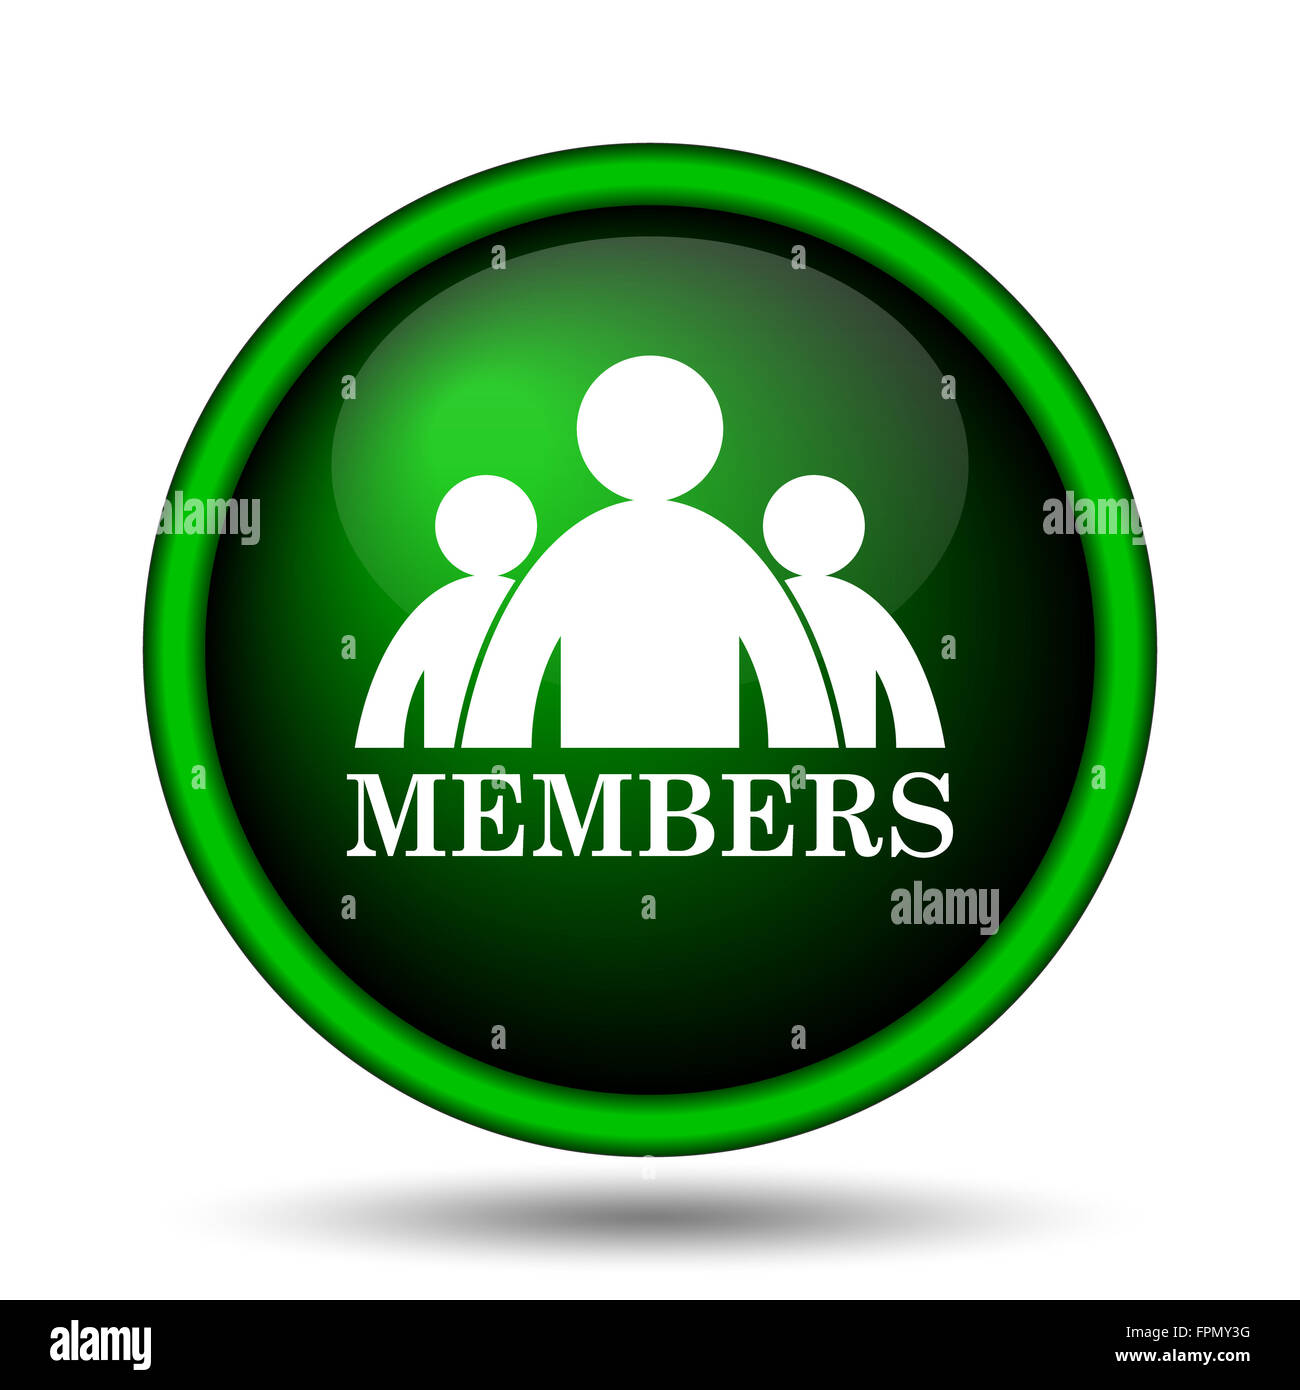 Members icon. Internet button on white background. - Stock Image